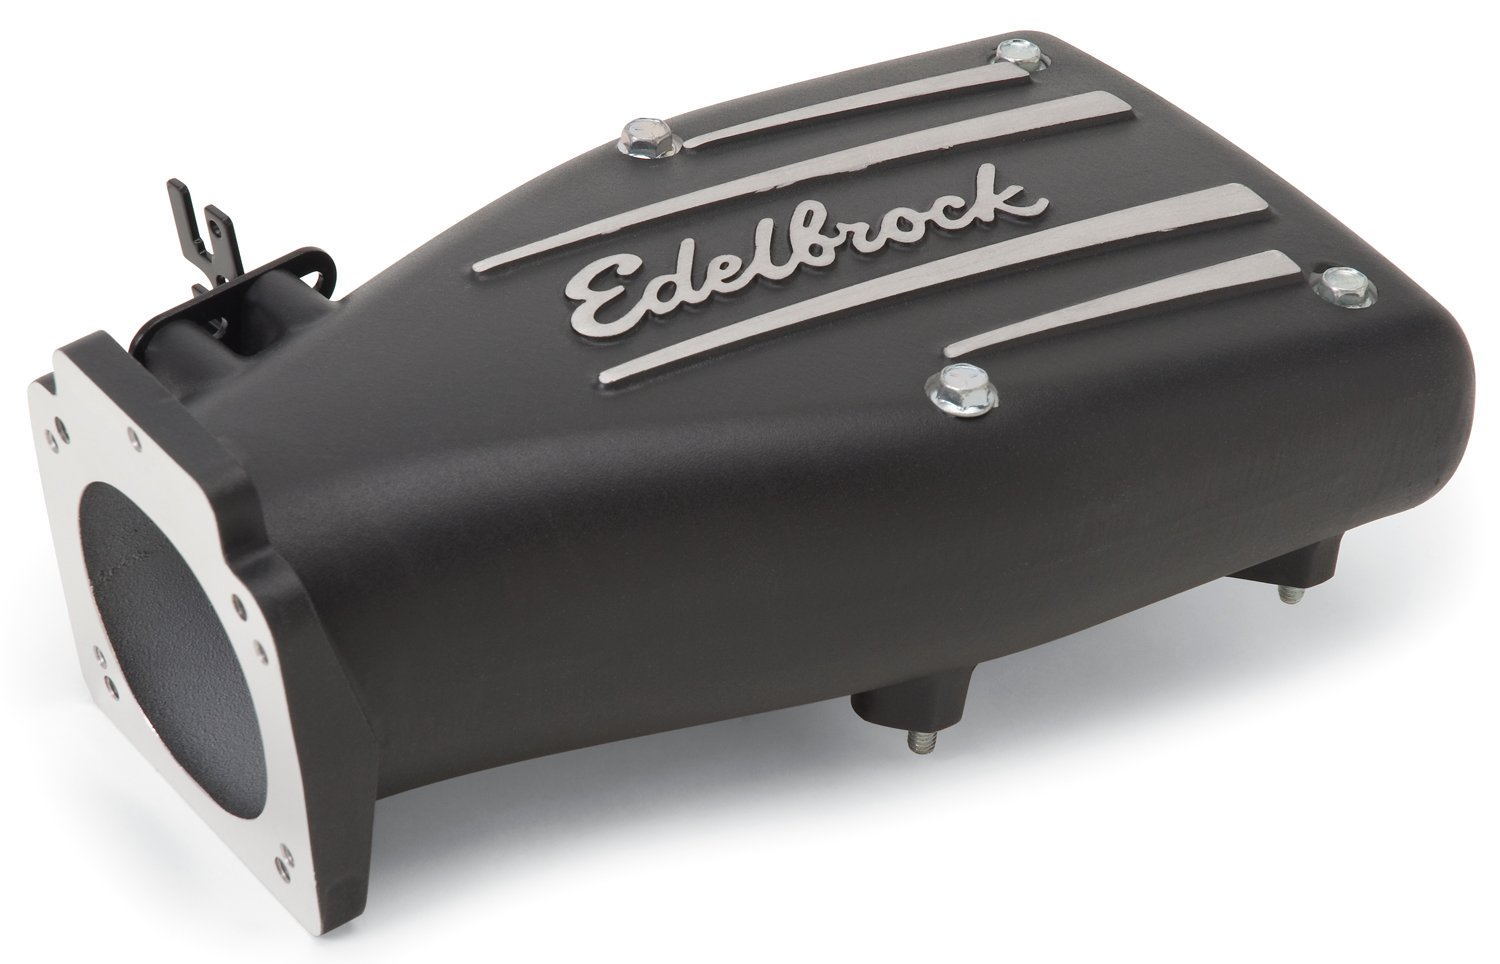 Edelbrock 38513 Throttle Body Intake Elbow Black Powder Coated GM LS1/LS2/Ford 5.0L 90mm Throttle Body To Square-Bore Flange Sideways Mount Box Style [Available While Supplies Last] Throttle Body Intake Elbow